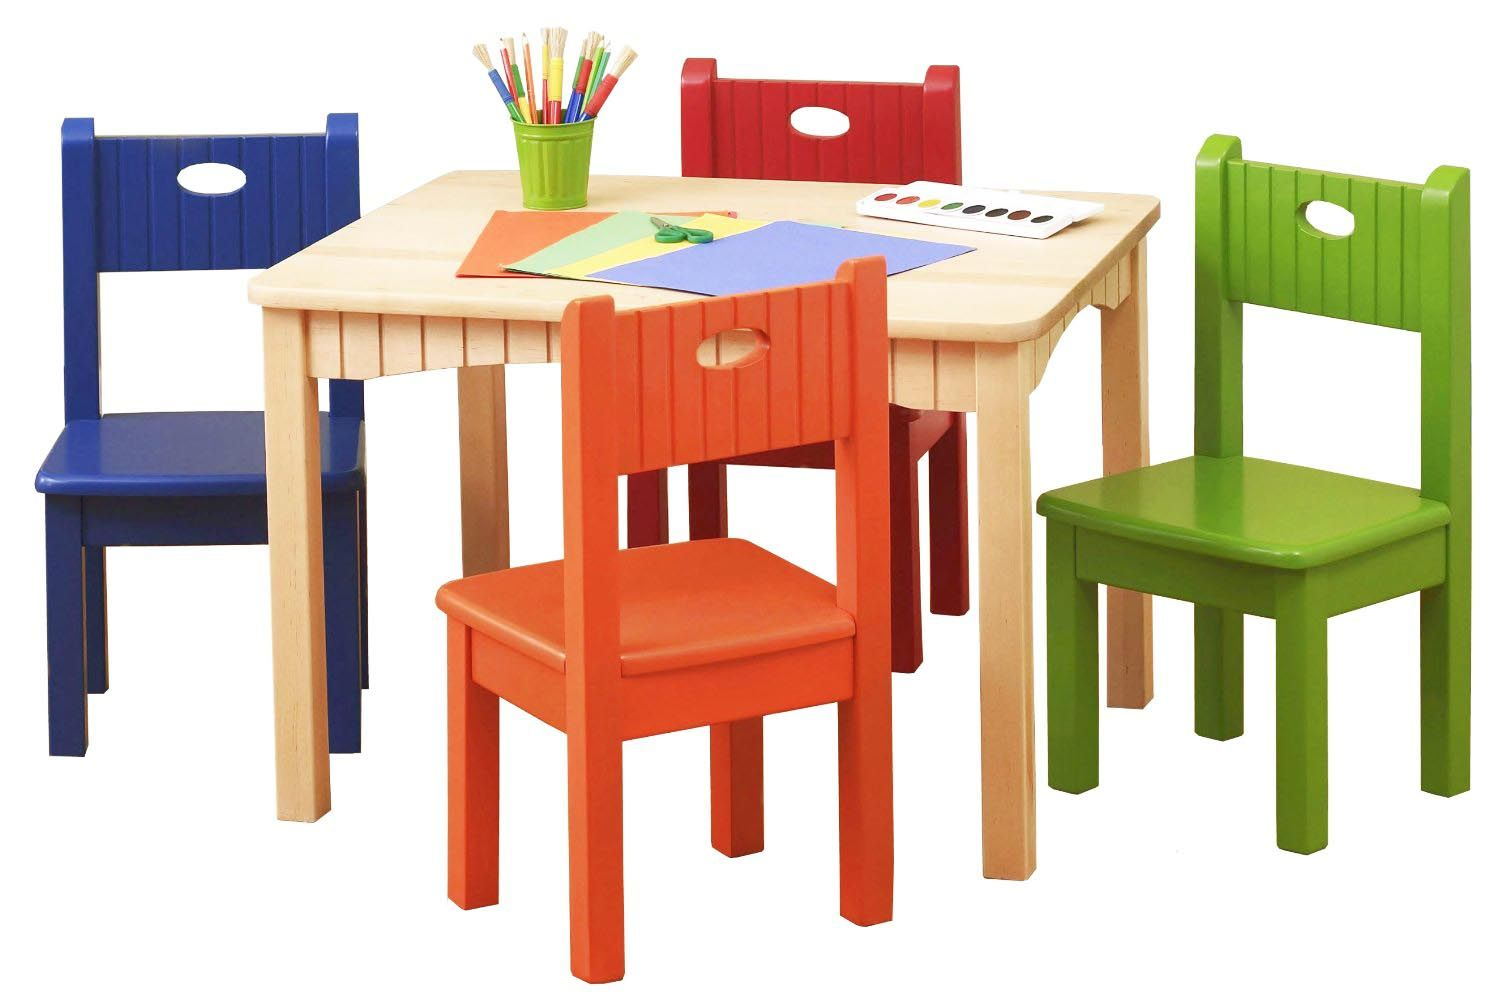 Strange Kids Plastic Table And Chairs Gip Wooden Table Chairs Interior Design Ideas Gresisoteloinfo